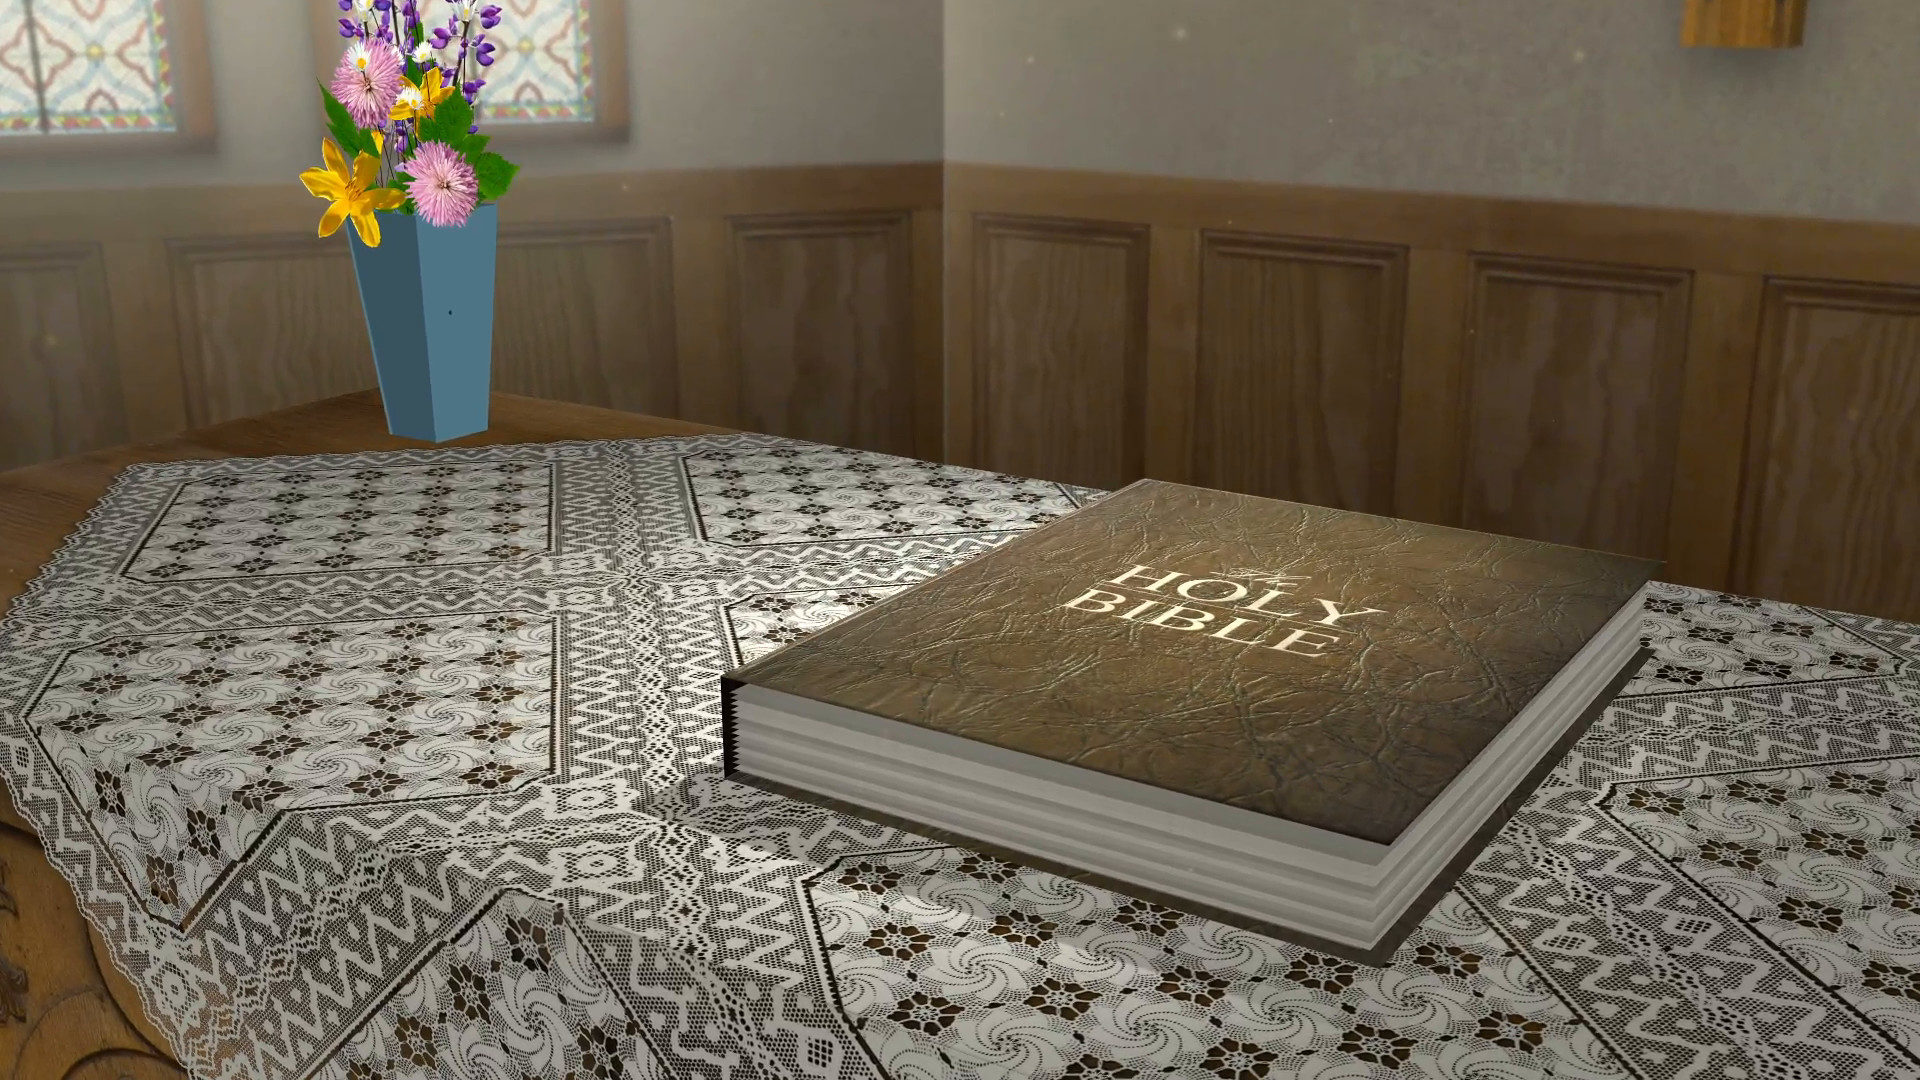 1920x1080 Insert a verse or Scripture into this 3D animation of a bible opening up on  a table in a church Motion Background - Storyblocks Video